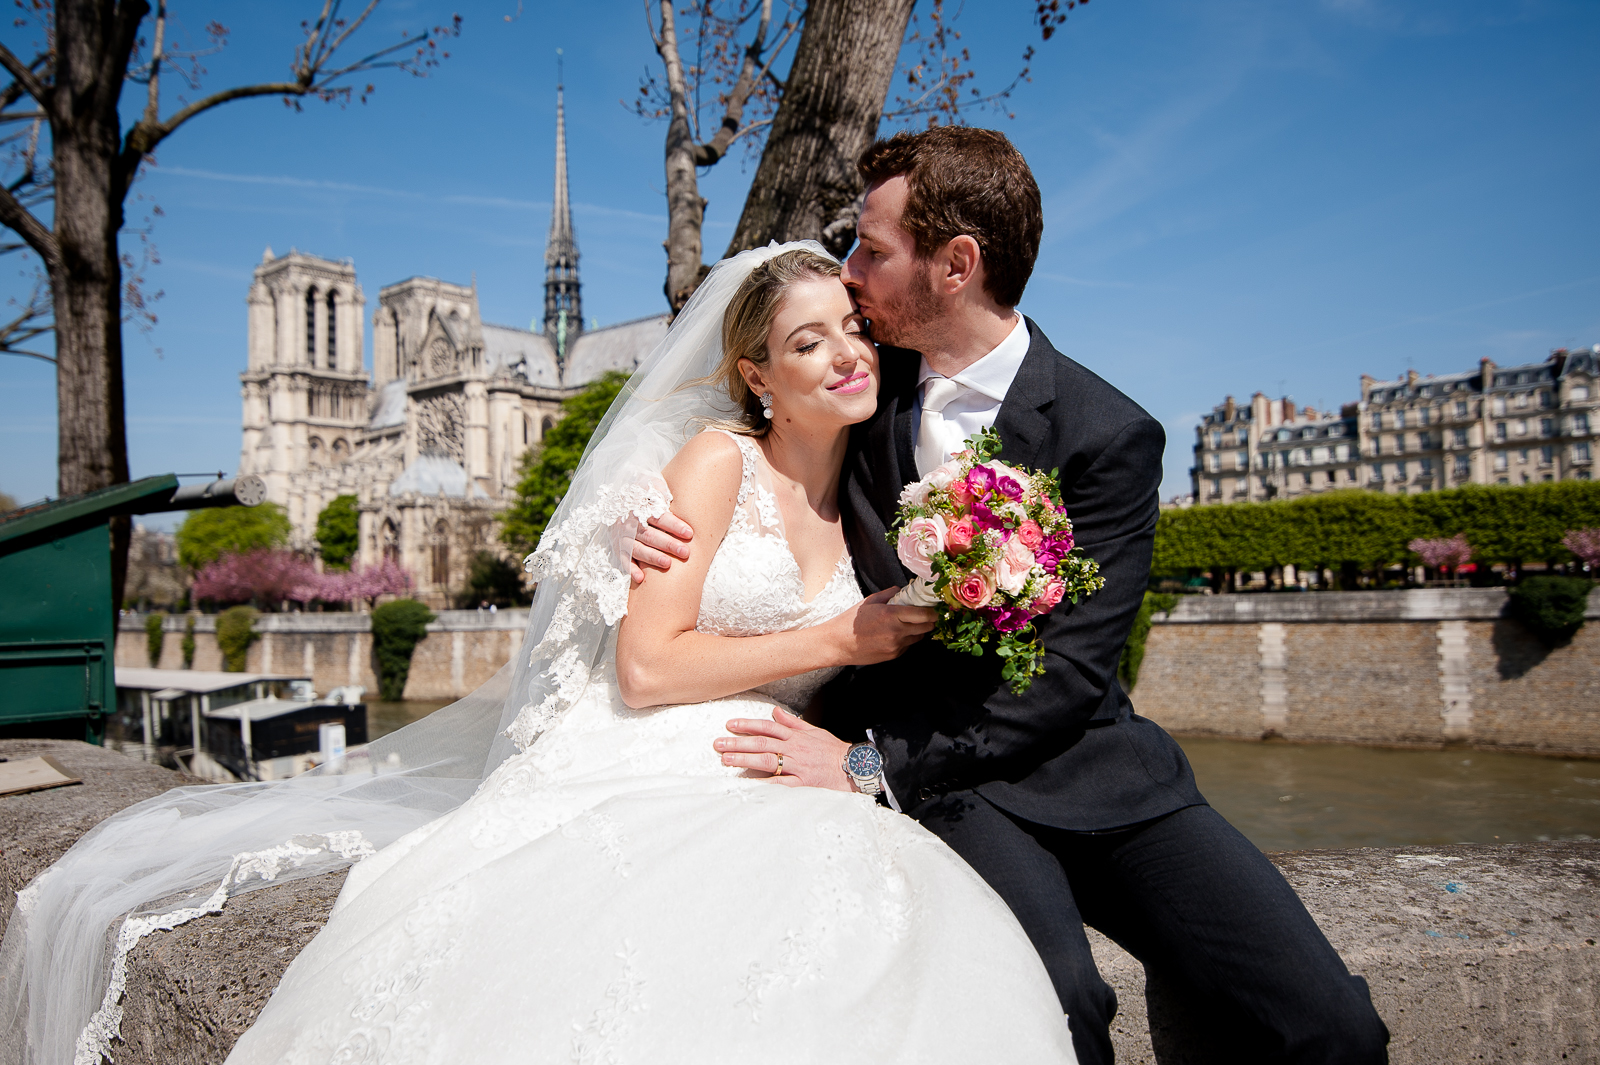 photographe de mariage a paris ile de france